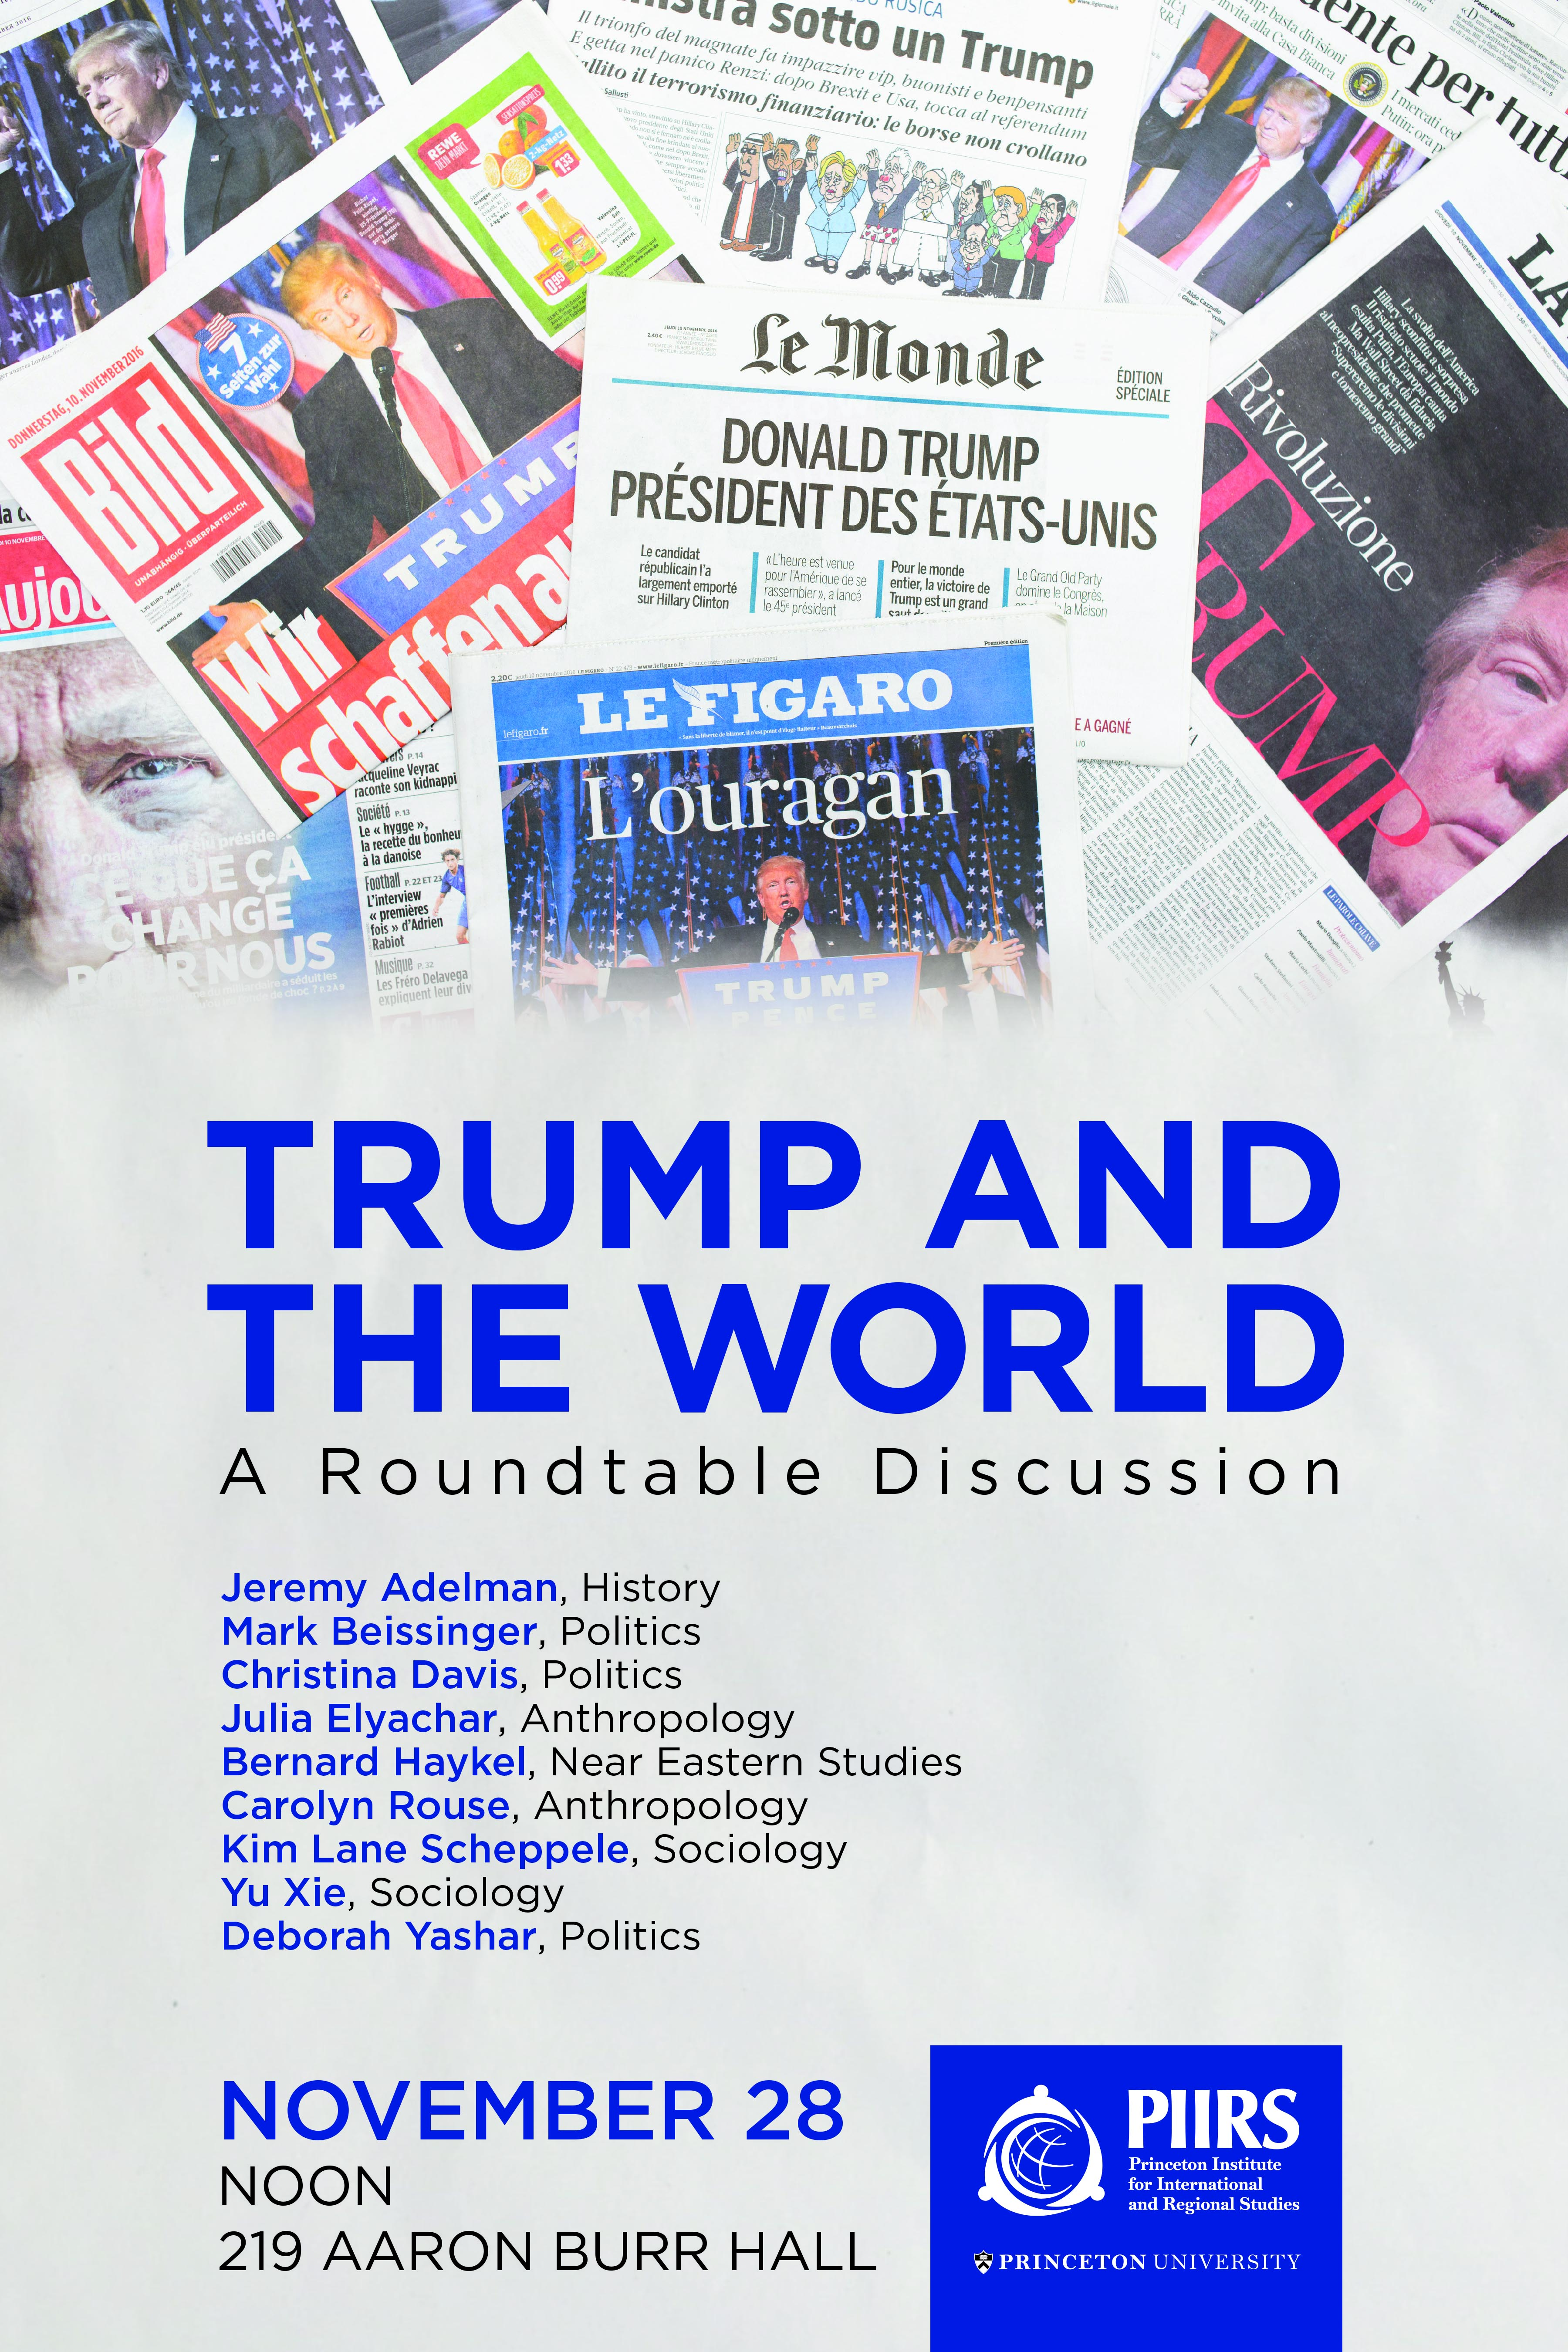 Round table discussion flyer - 740999_trump_poster_final_v2 Jpg